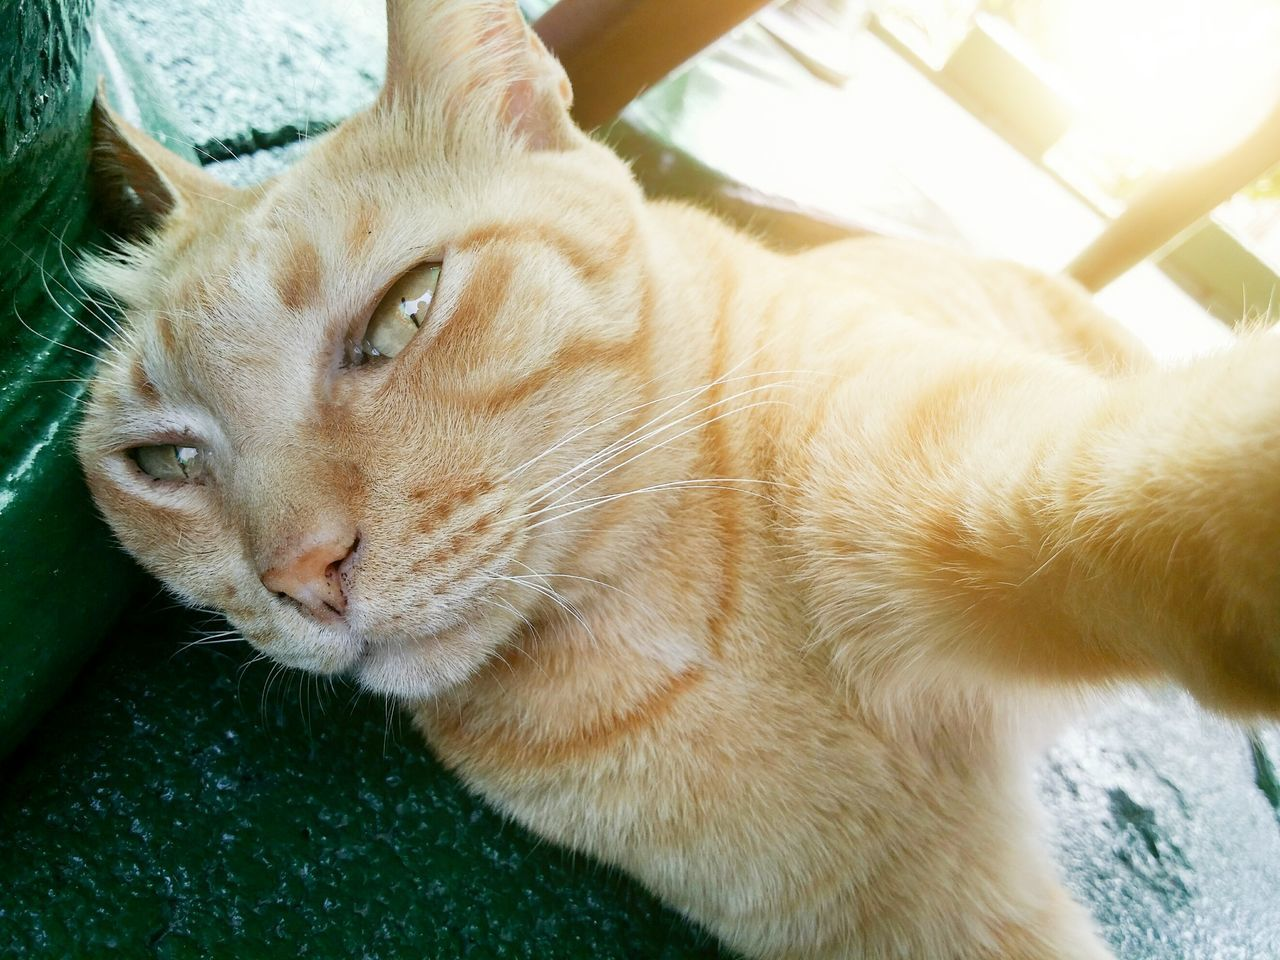 My orange tabby is taking a selfie Pets One Animal Close-up Animal Themes Domestic Animals Cats Of EyeEm Cat Orange Tabby Selfıe No People